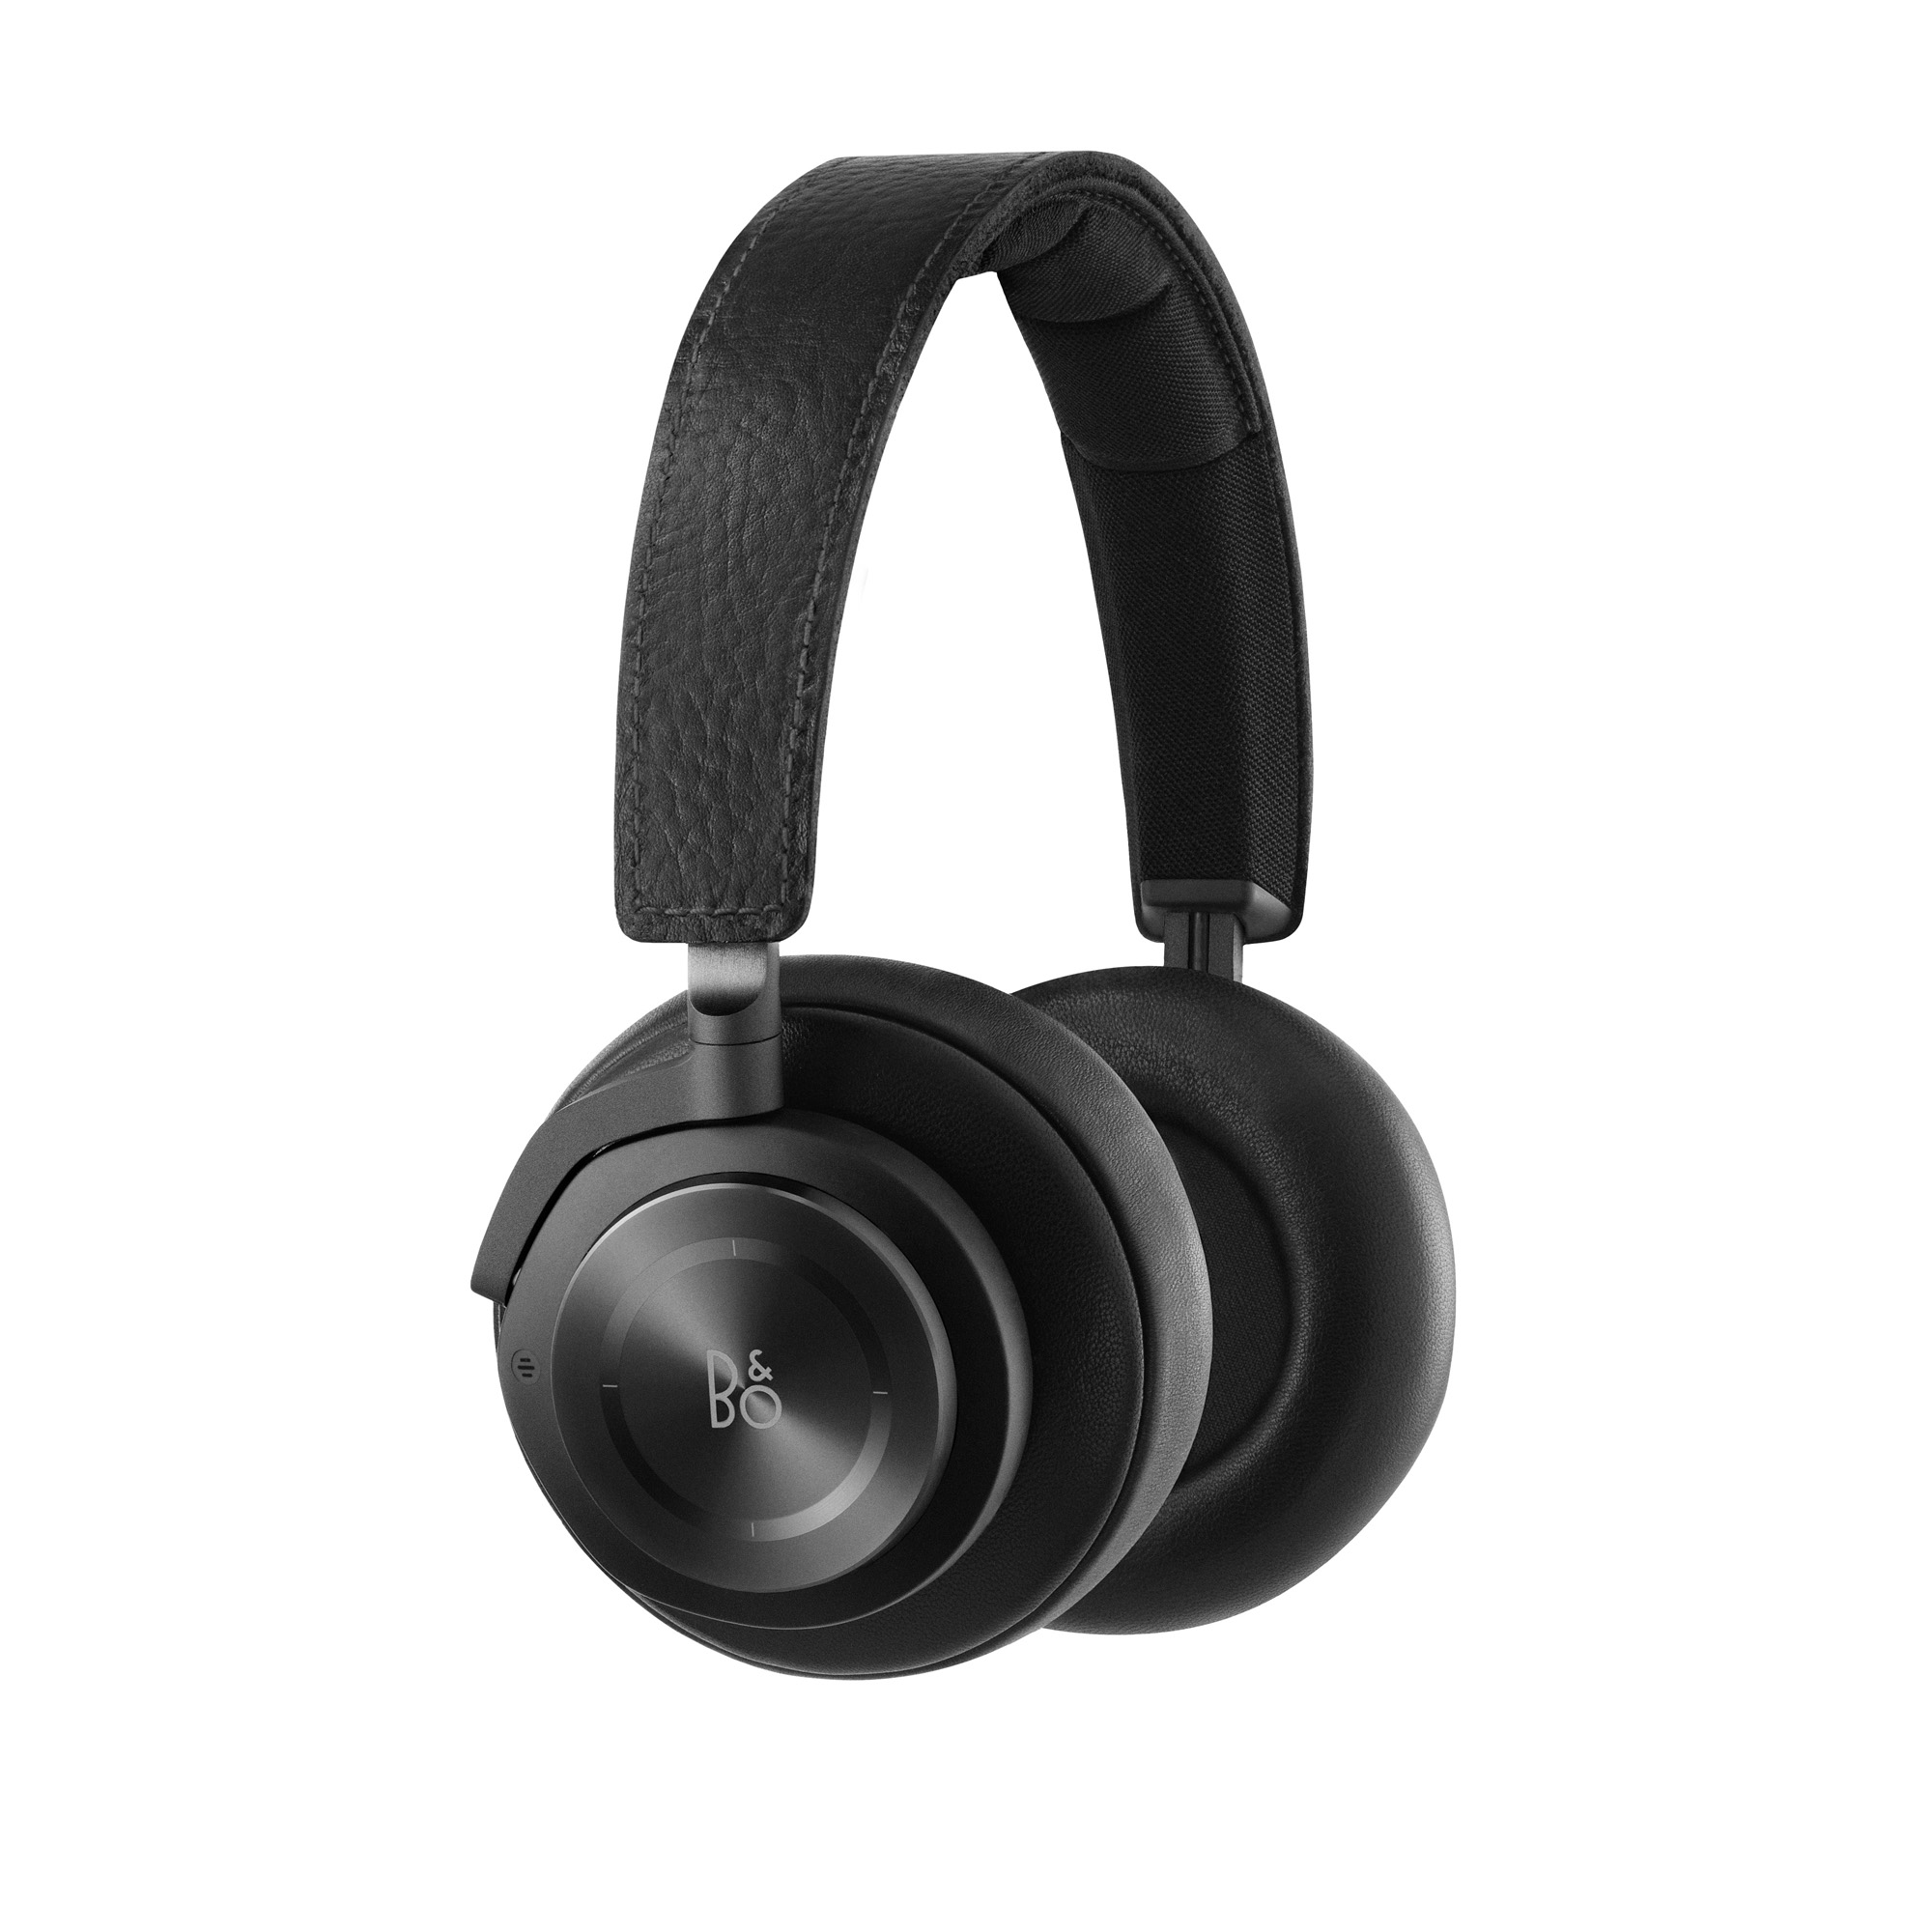 B&O Play รุ่น BeoPlay H9 Black